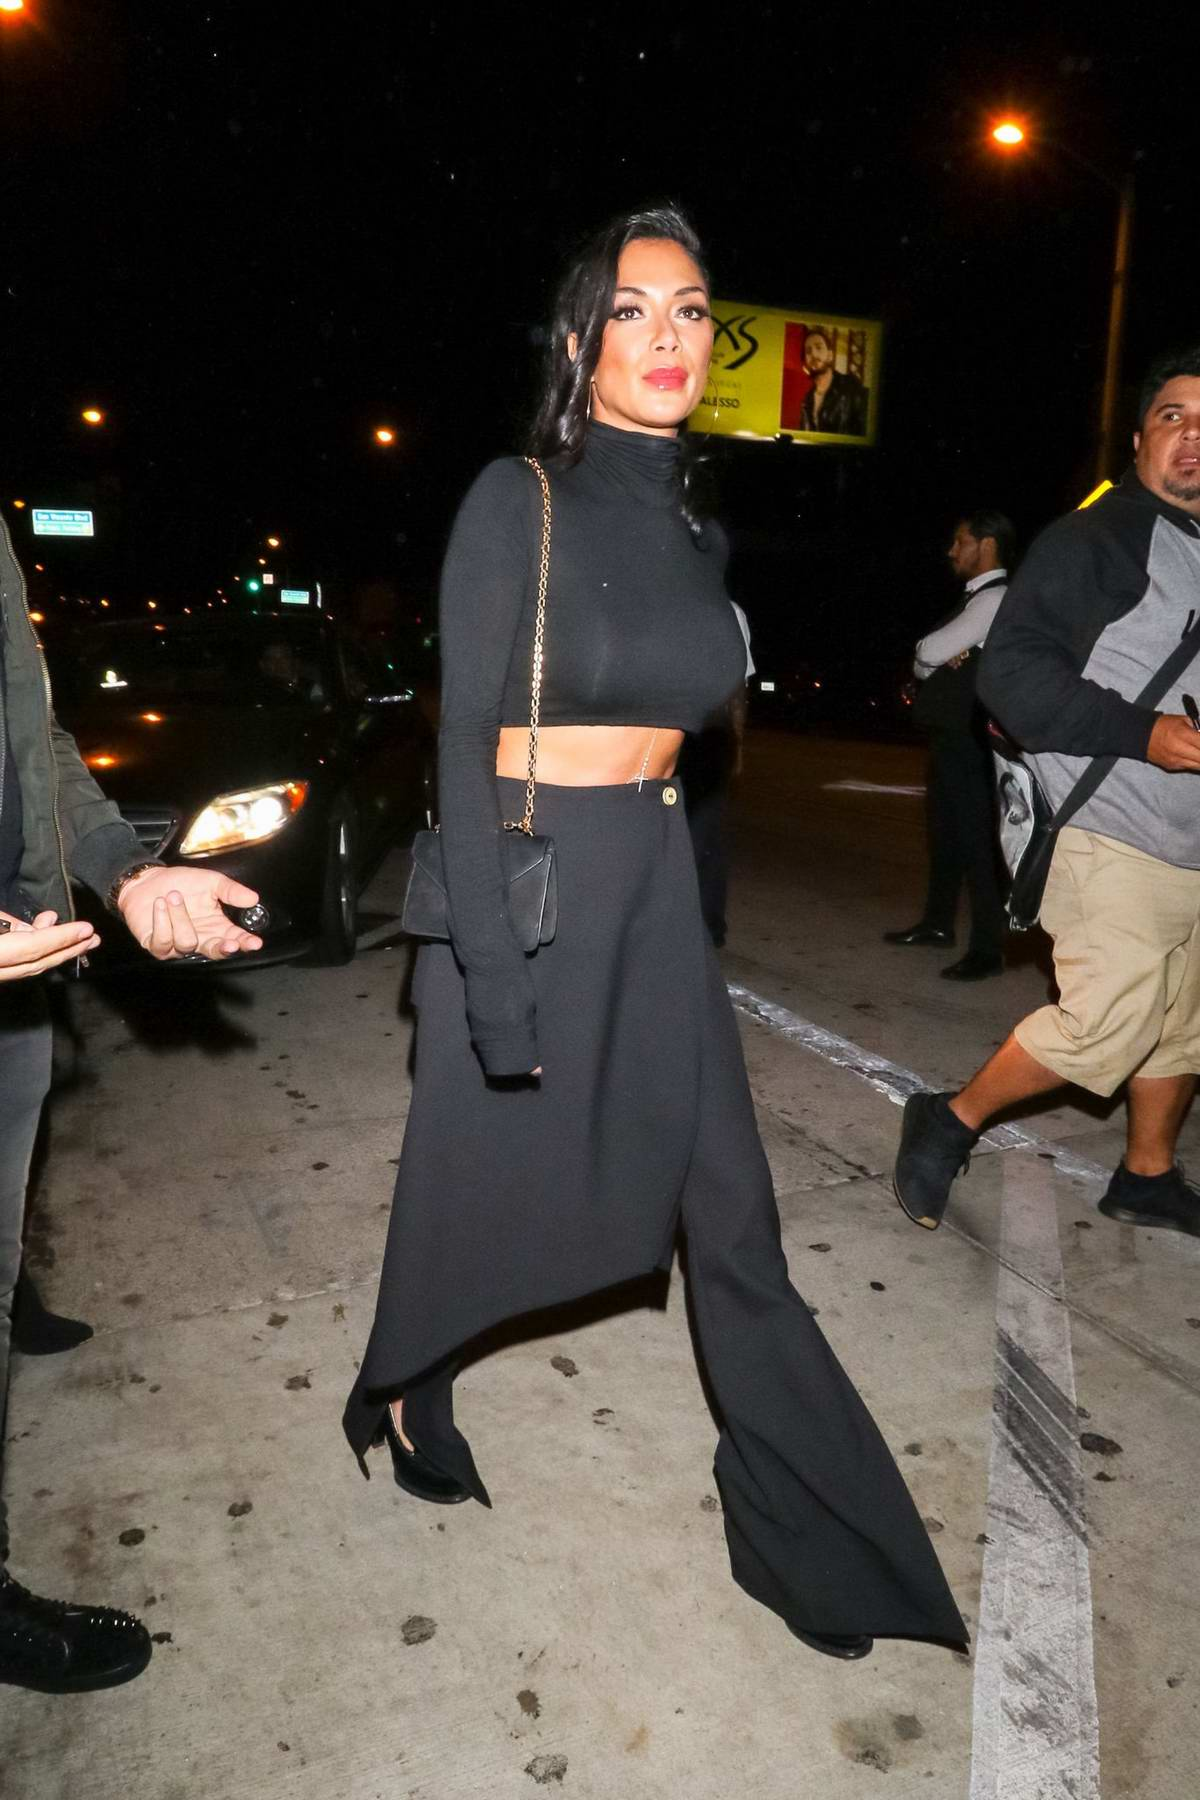 Nicole Scherzinger spotted in an all black outfit as she leaves Catch restaurant in Los Angeles